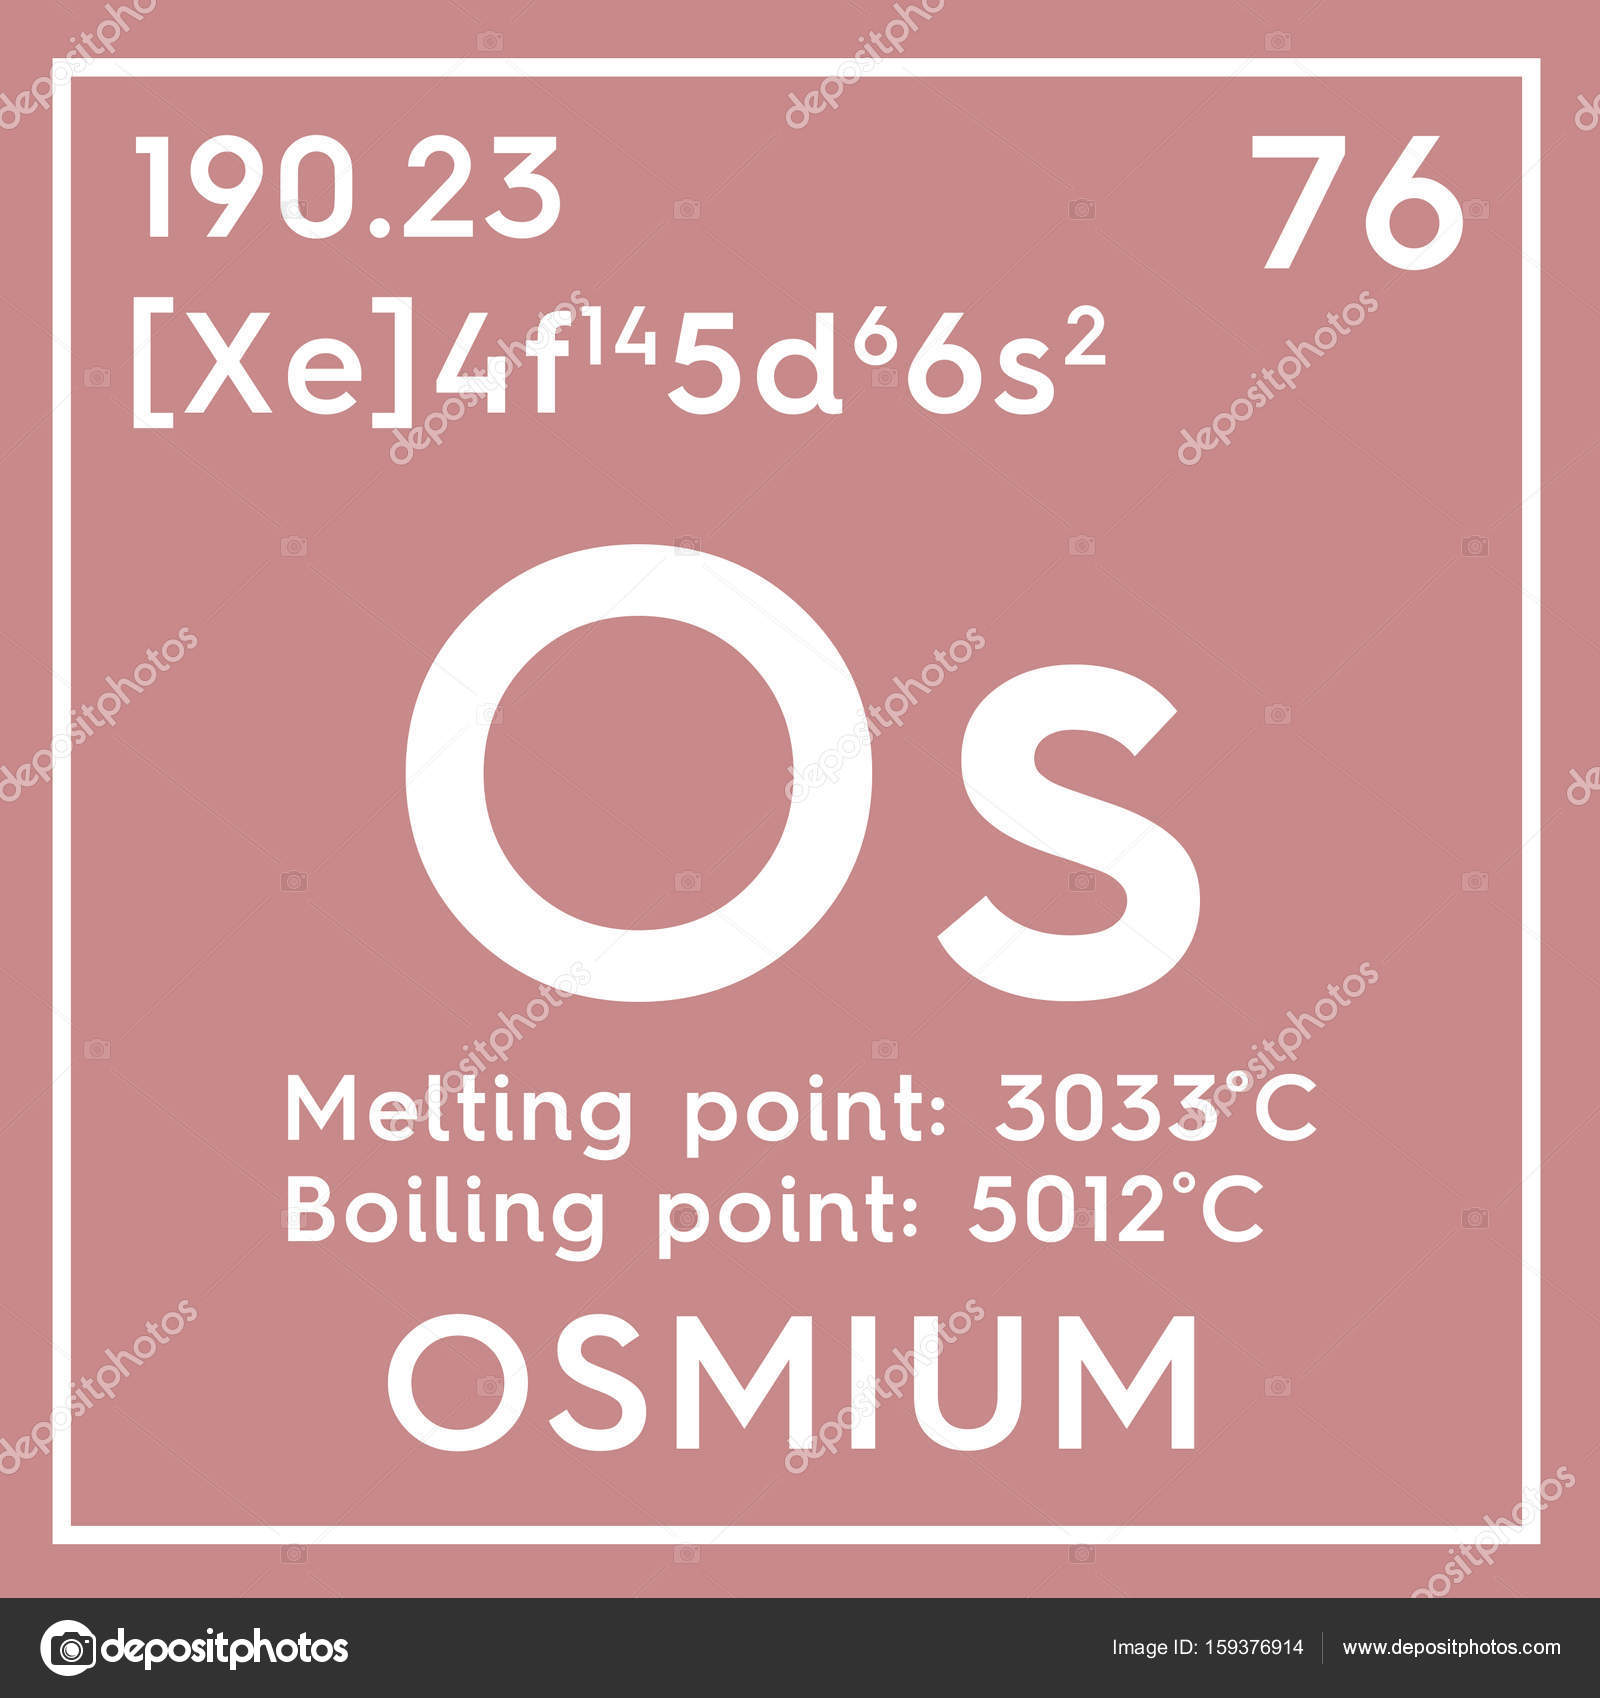 Osmium transition metals chemical element of mendeleevs periodic osmium transition metals chemical element of mendeleevs periodic table osmium in square cube creative concept photo by sanches812 urtaz Choice Image